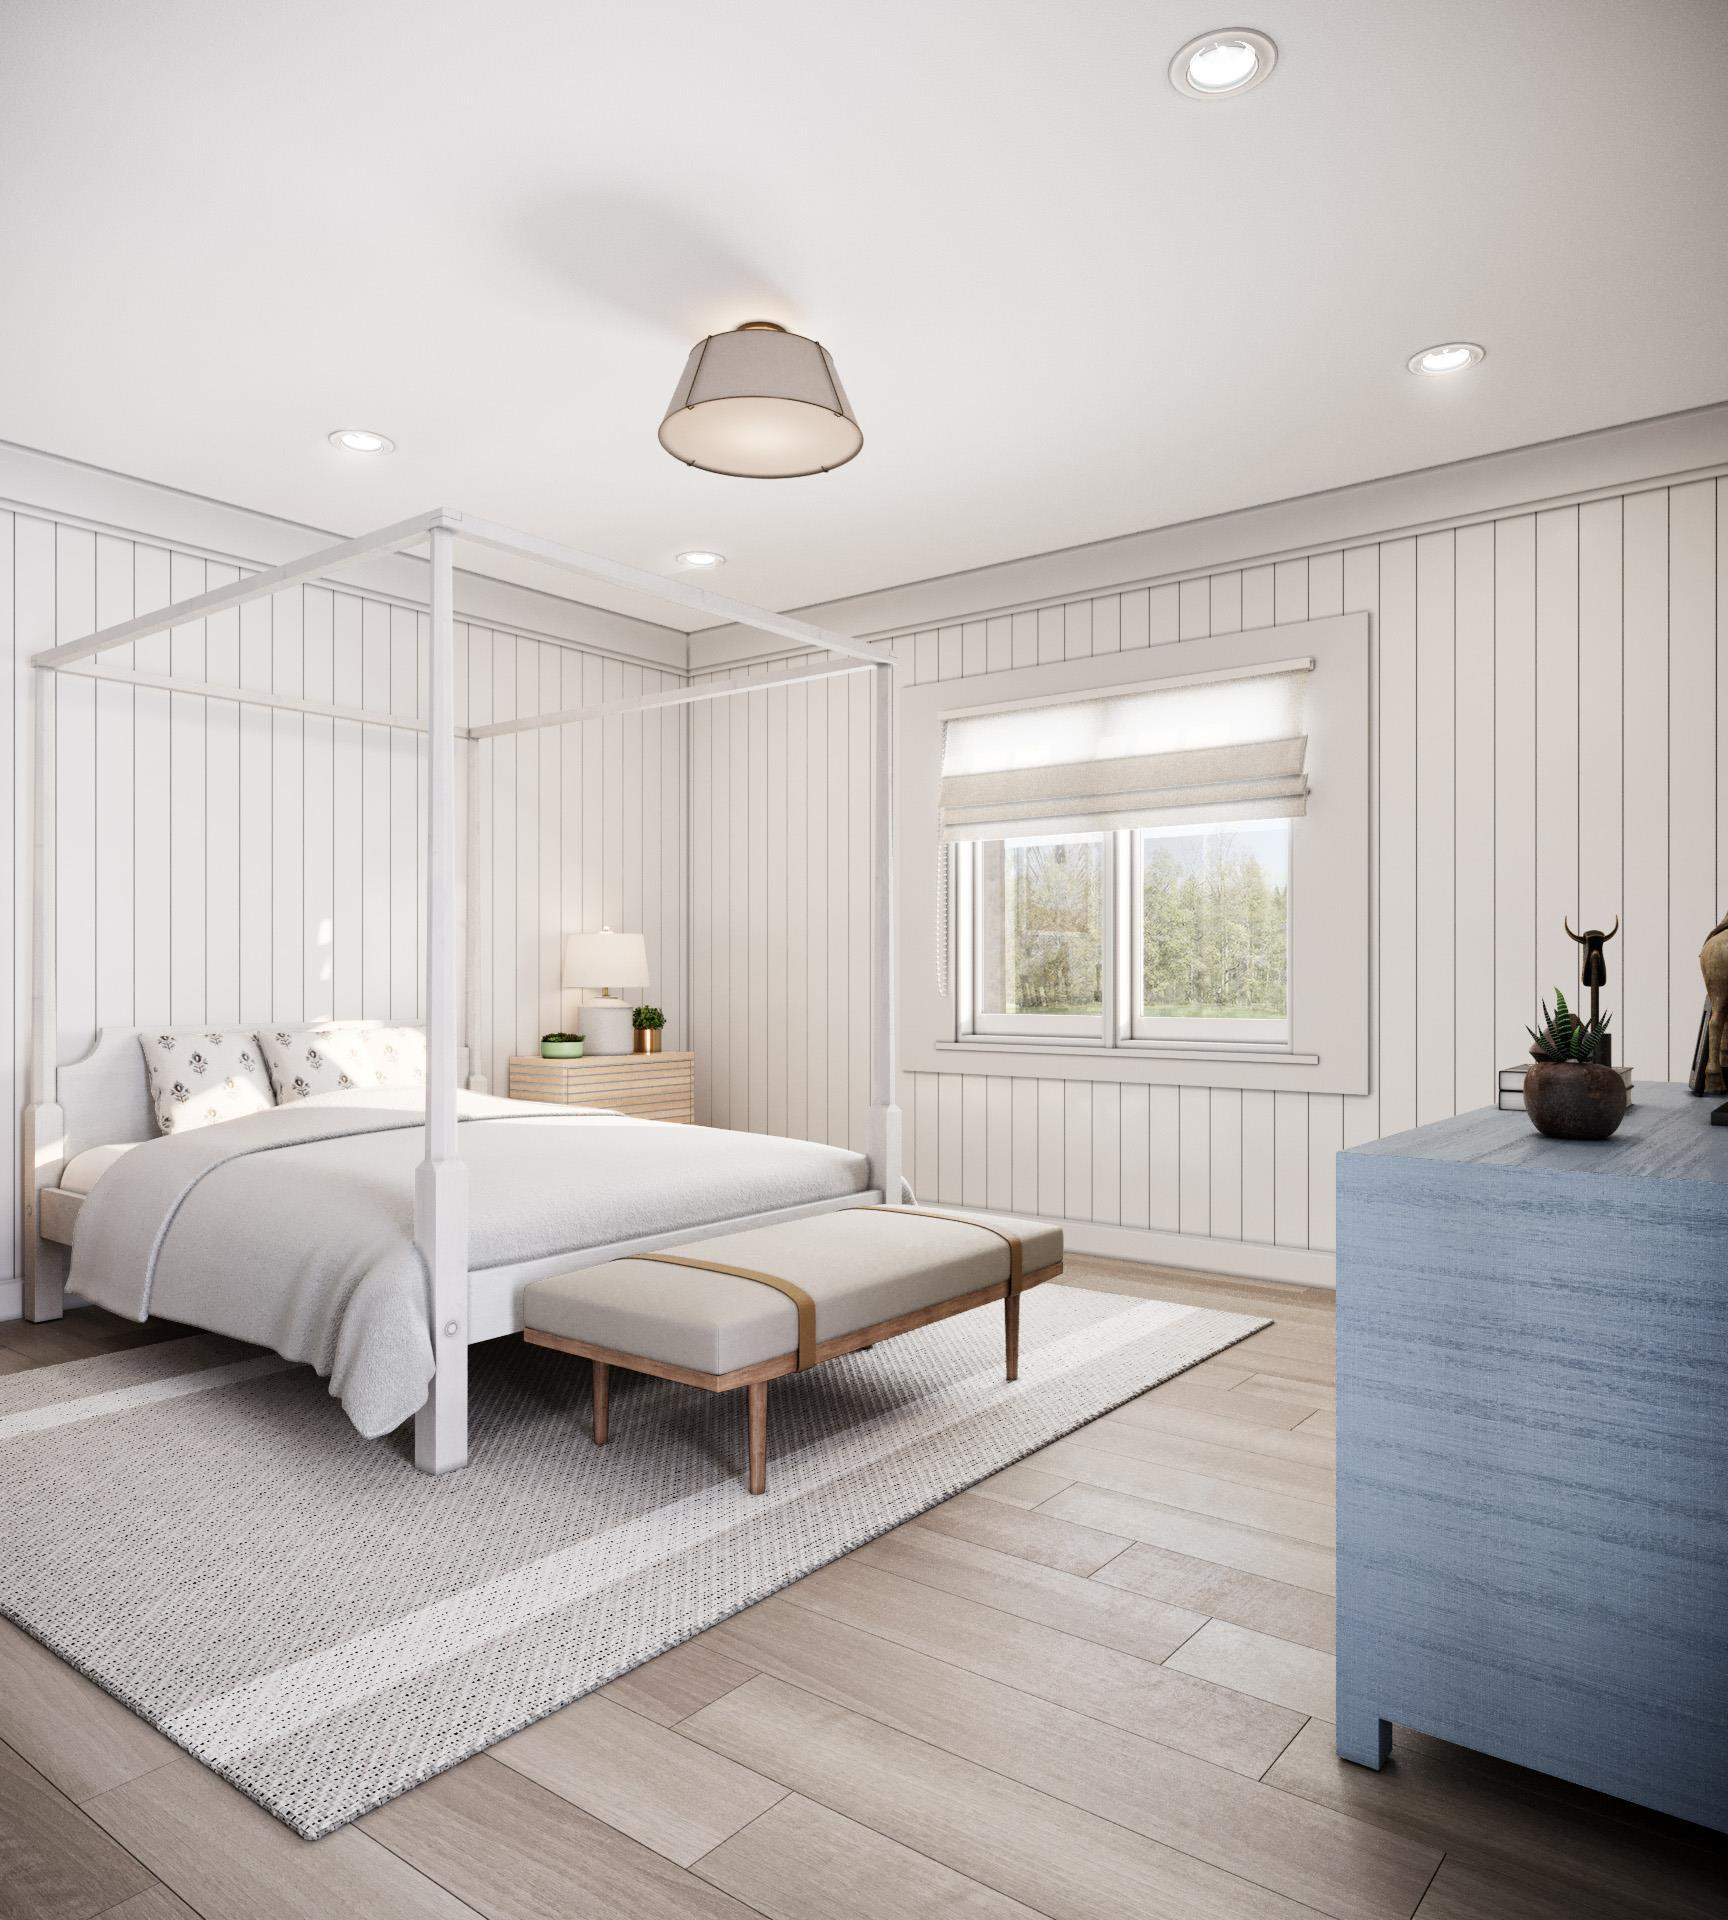 Bedroom featured in the Villa C2 By Beechwood Homes in Nassau-Suffolk, NY